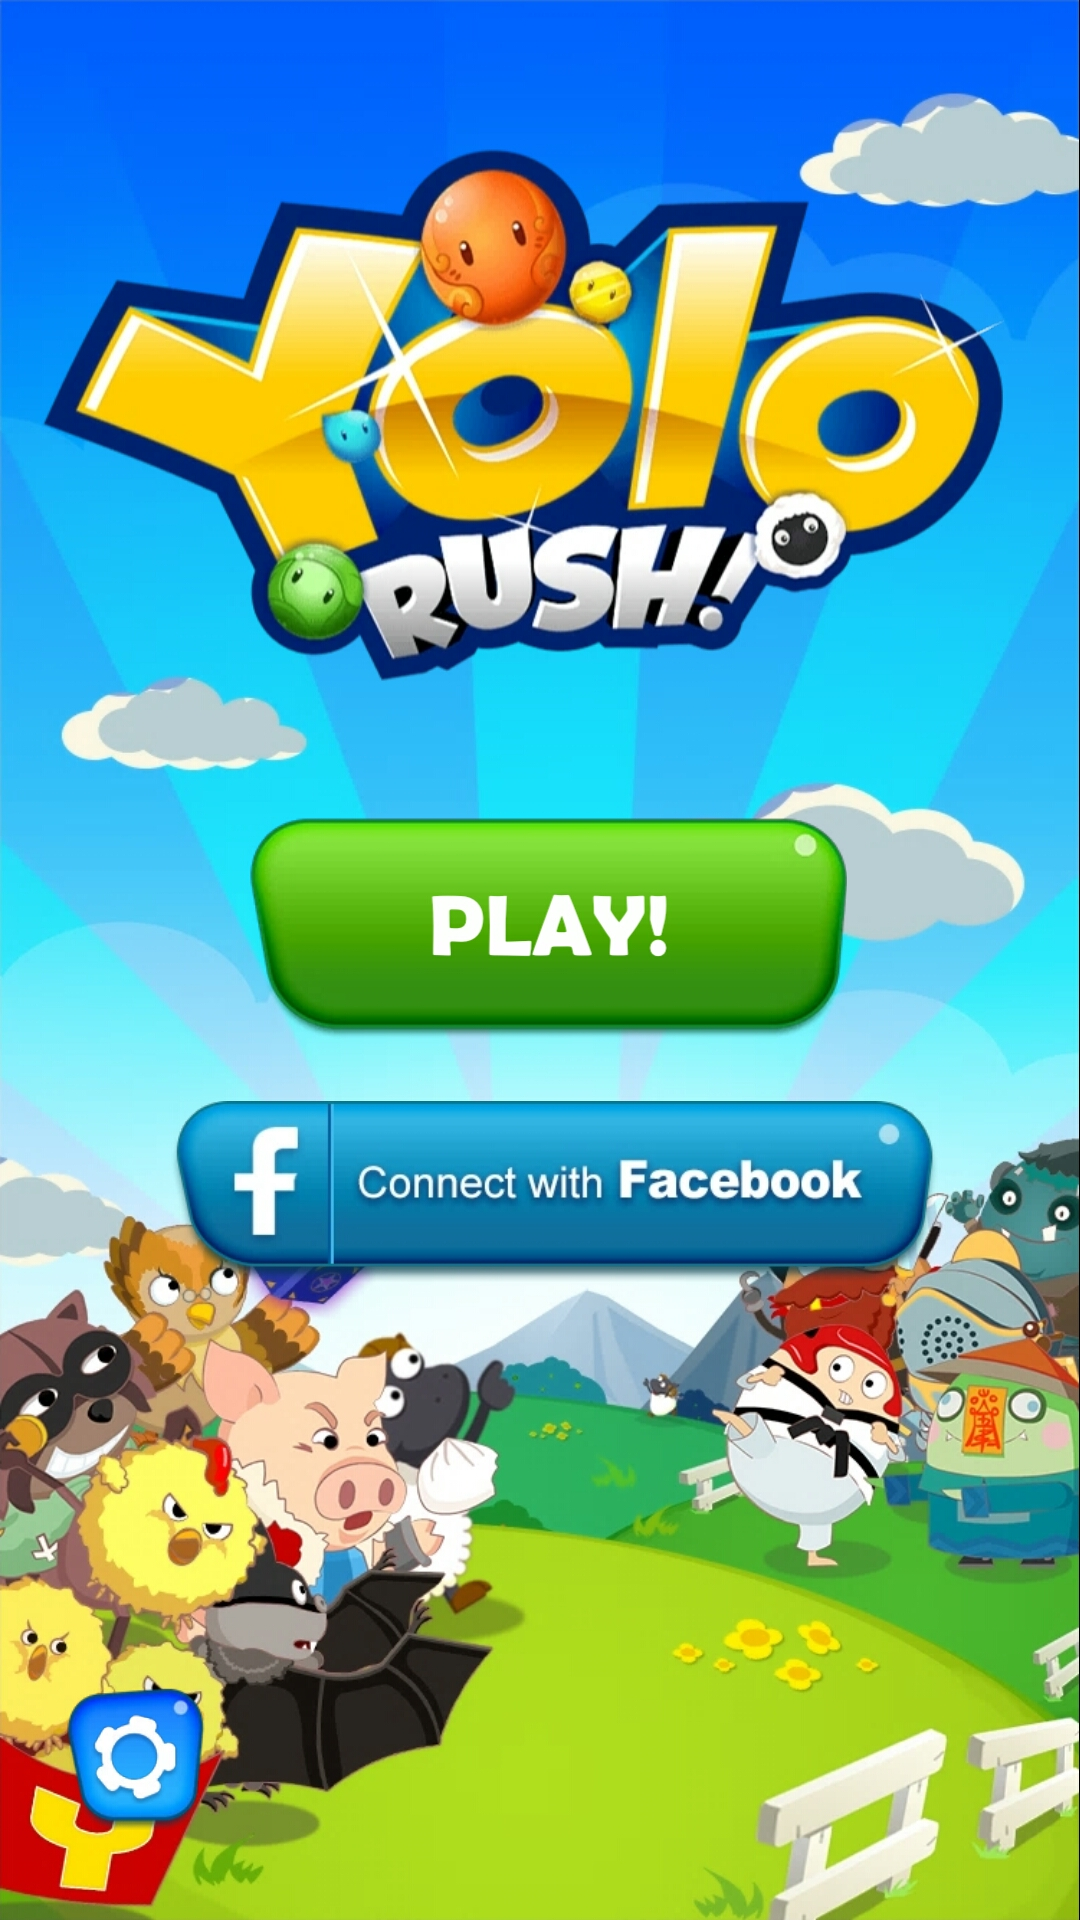 Yolo Rush Game ::By Ingenious Creations Ltd - Switch Color - 4 Pics 1 Word